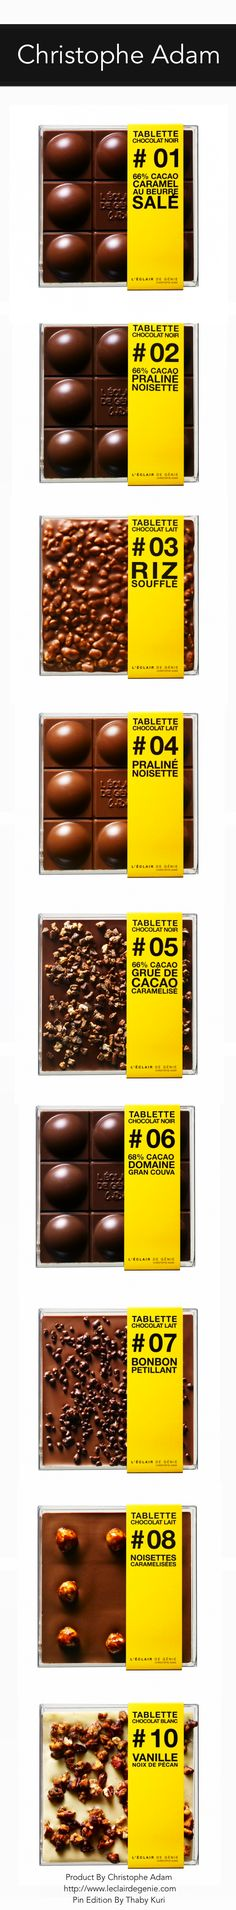 AMAZING CHOCOLATE TABLETTE By Christophe Adam. #numbers #chocolate #packaging #beautifulfood #bar #tablet